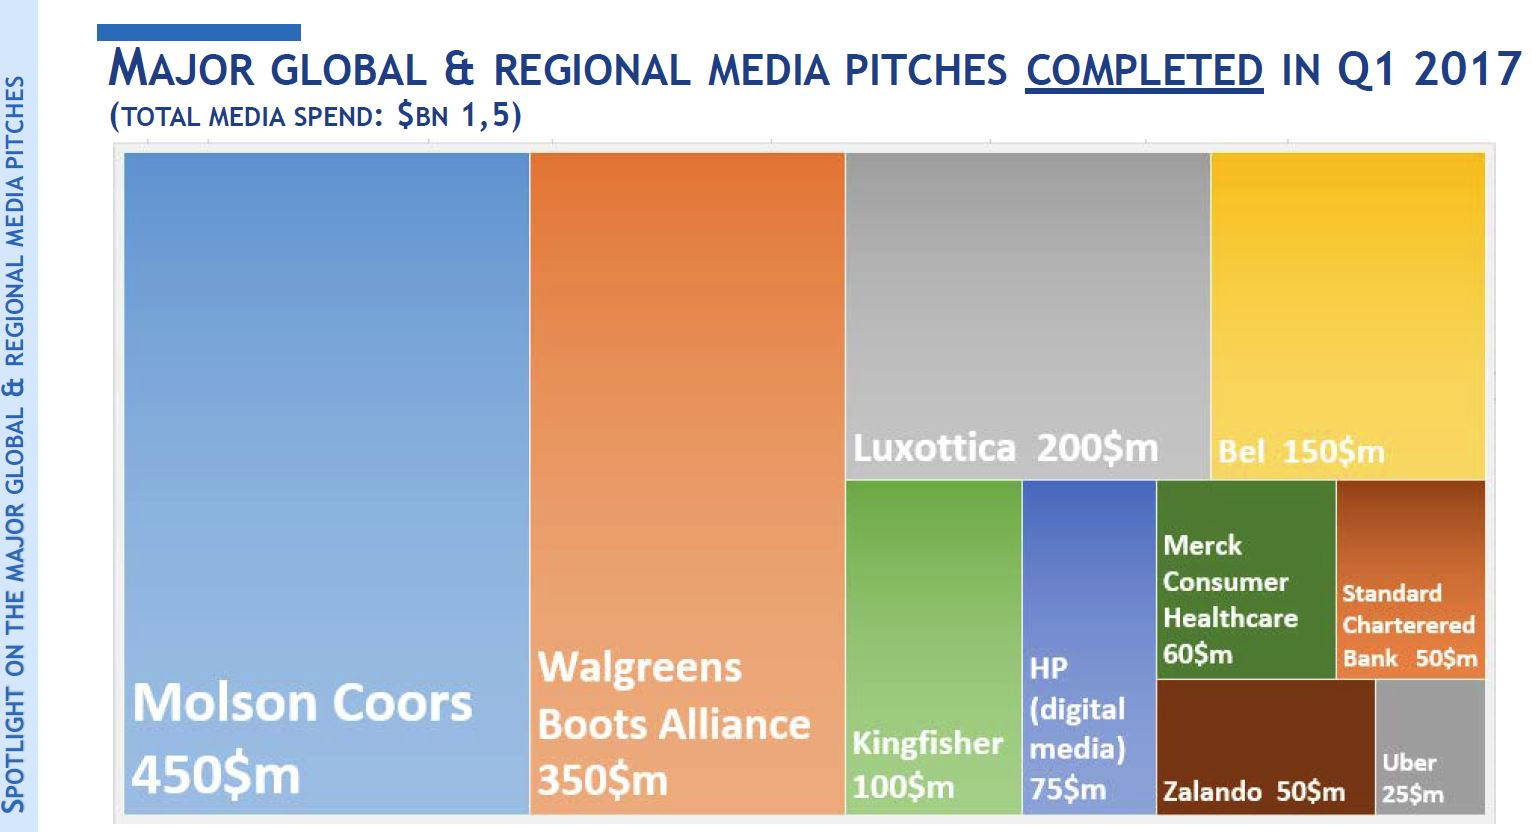 neoogilvy york office neoogilvy. Major Global And Regional Media Pitches In Q1 2017 (courtesy Of COMvergence): Neoogilvy York Office